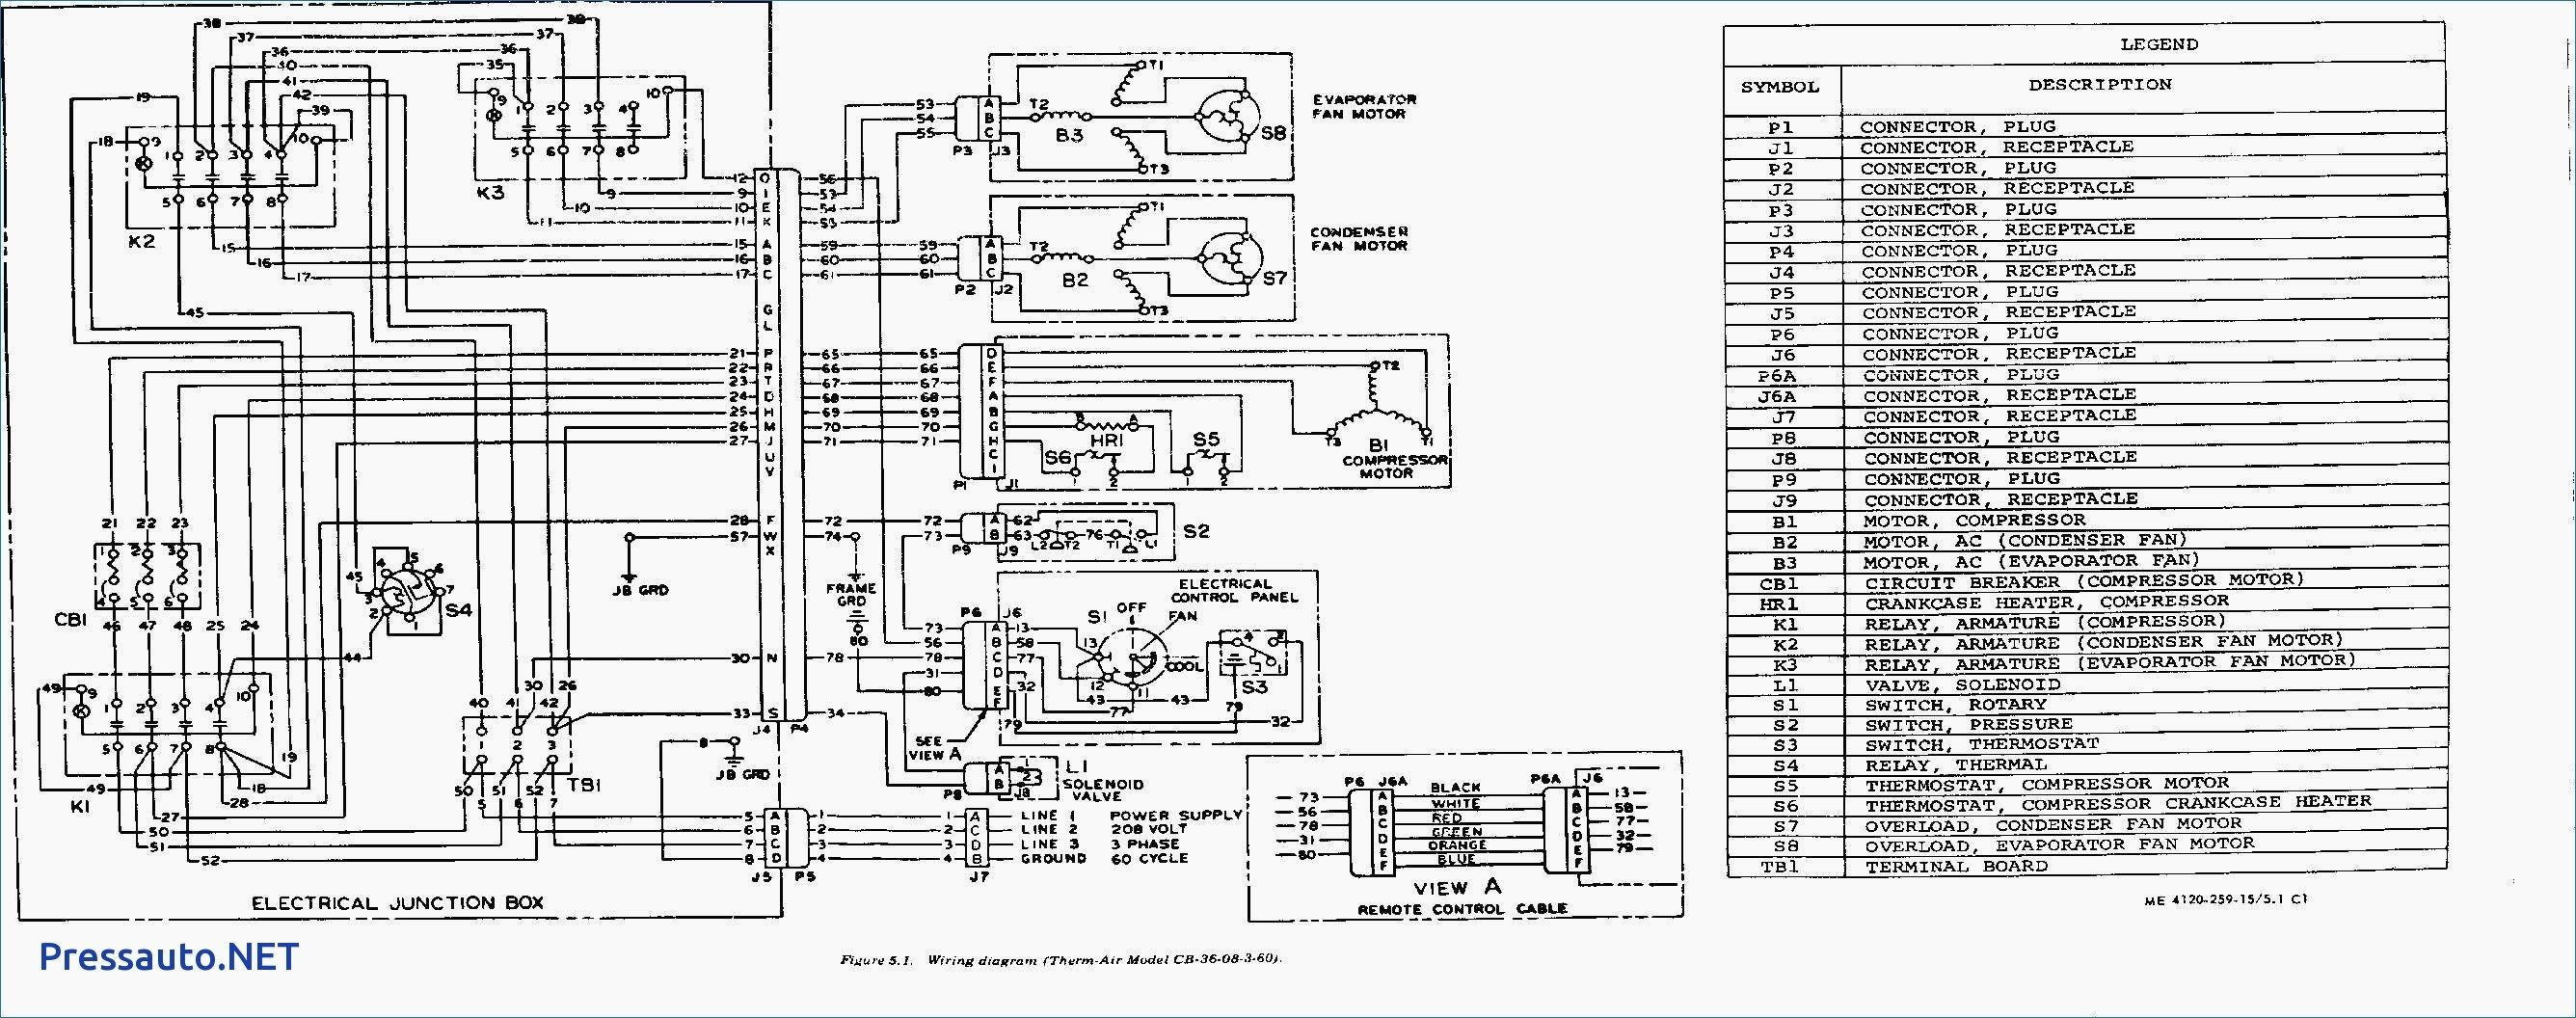 trane wiring diagram thoritsolutions com and rooftop unit on trane pertaining to trane wiring diagram [ 2672 x 1056 Pixel ]